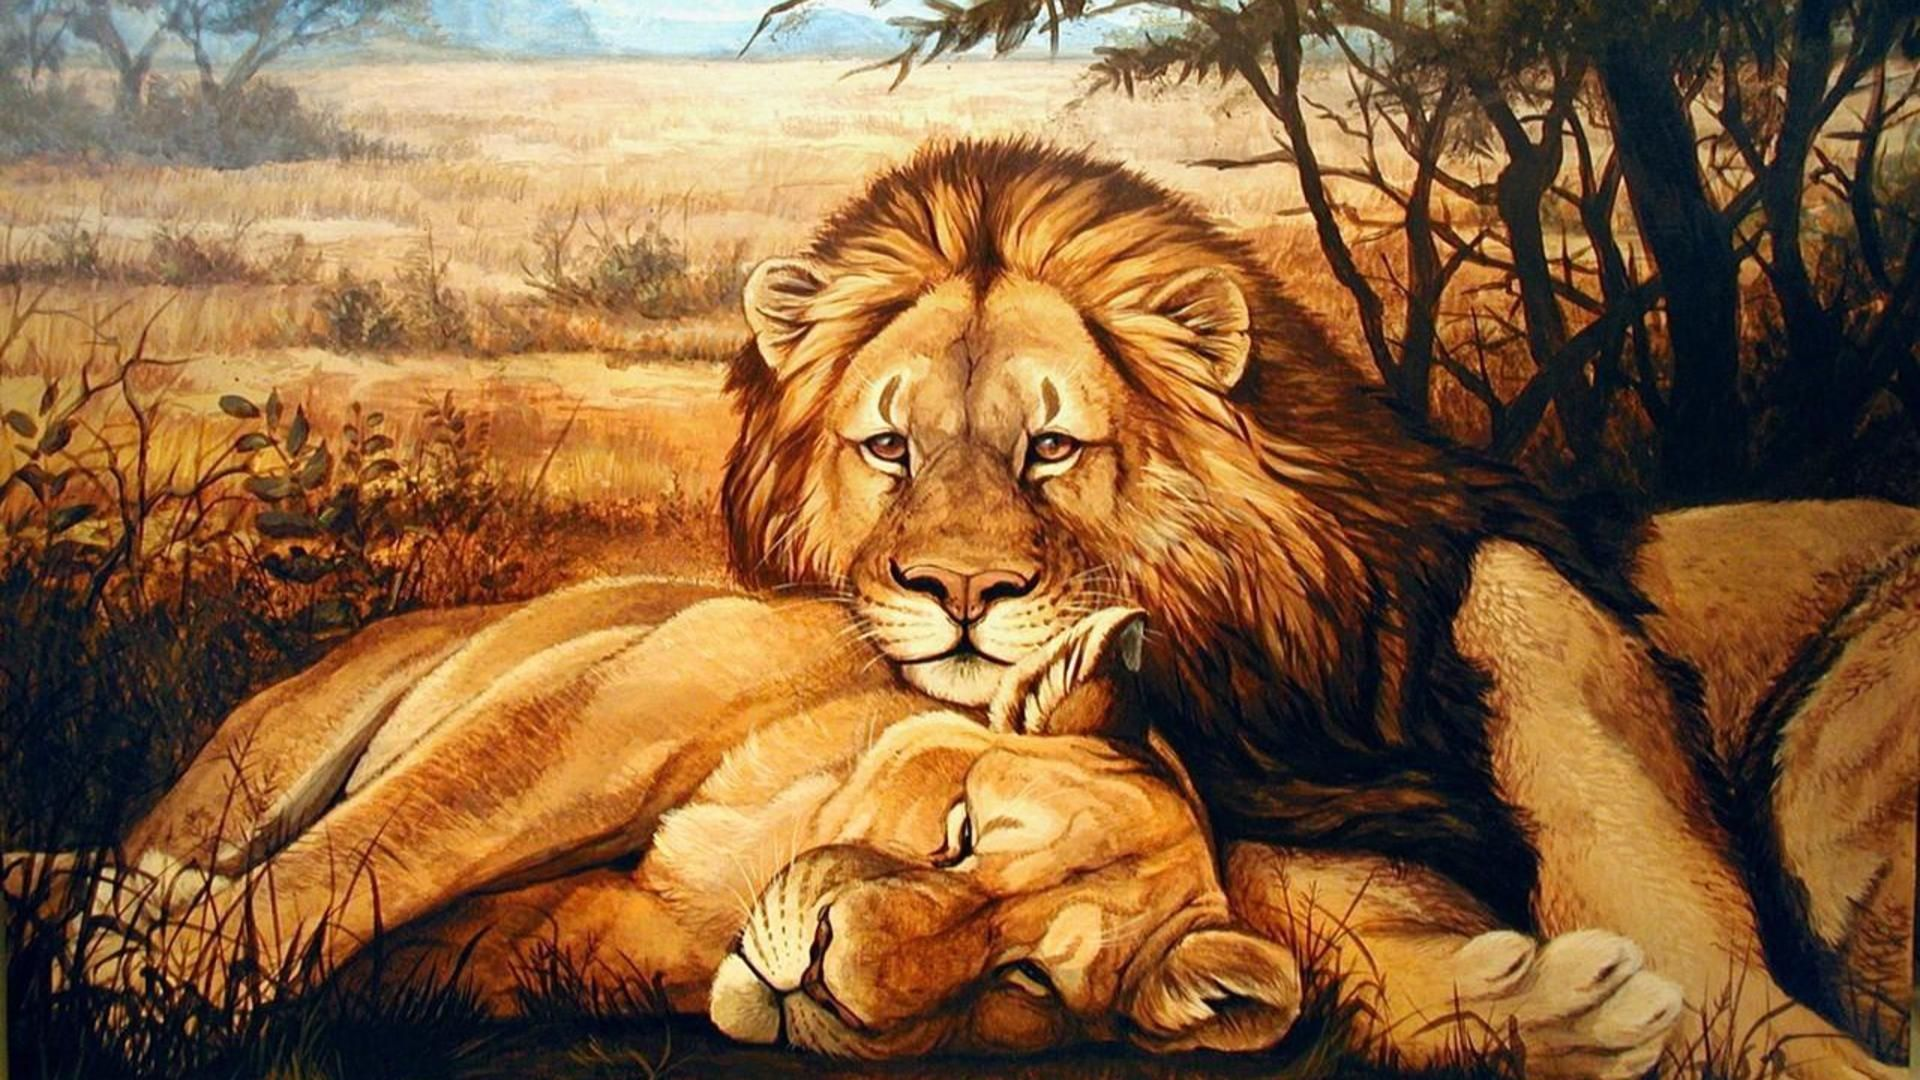 Lion Cheetah And Tiger Animals Big Cat Wallpap 5431